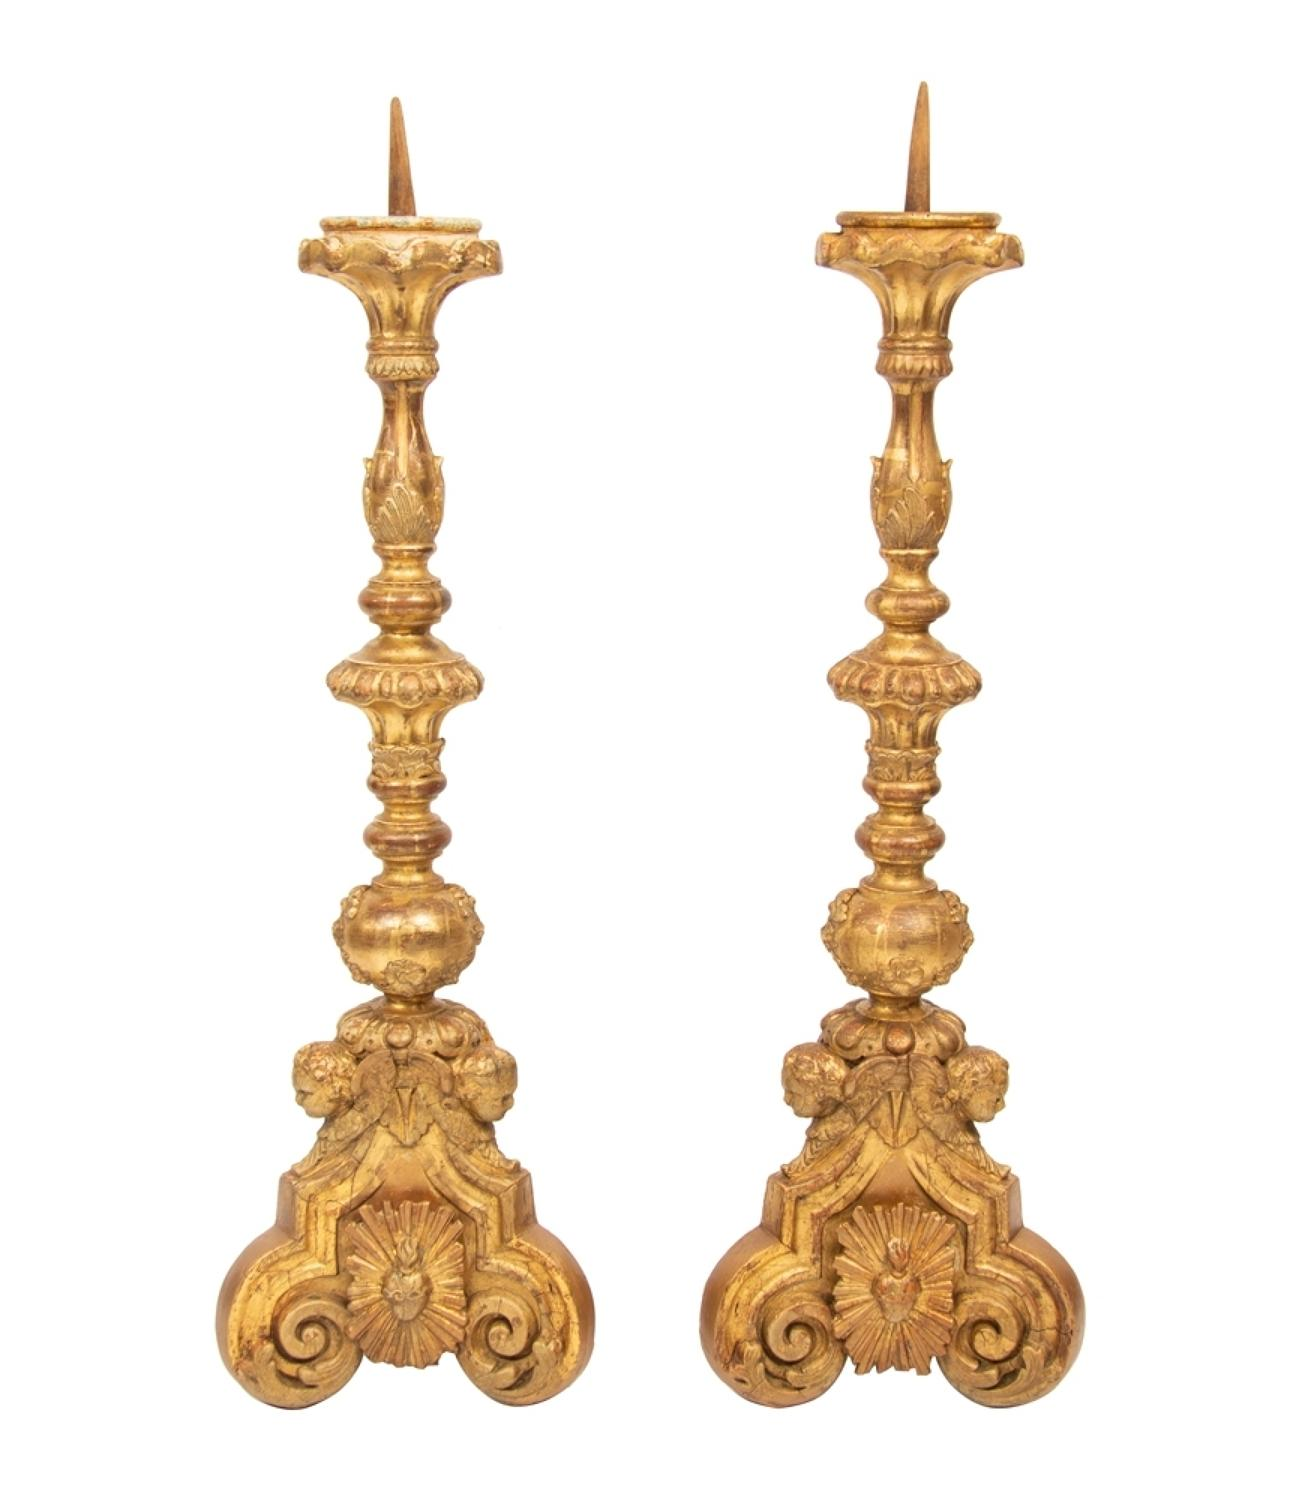 Pair of Antique Candlesticks, French c.1780's